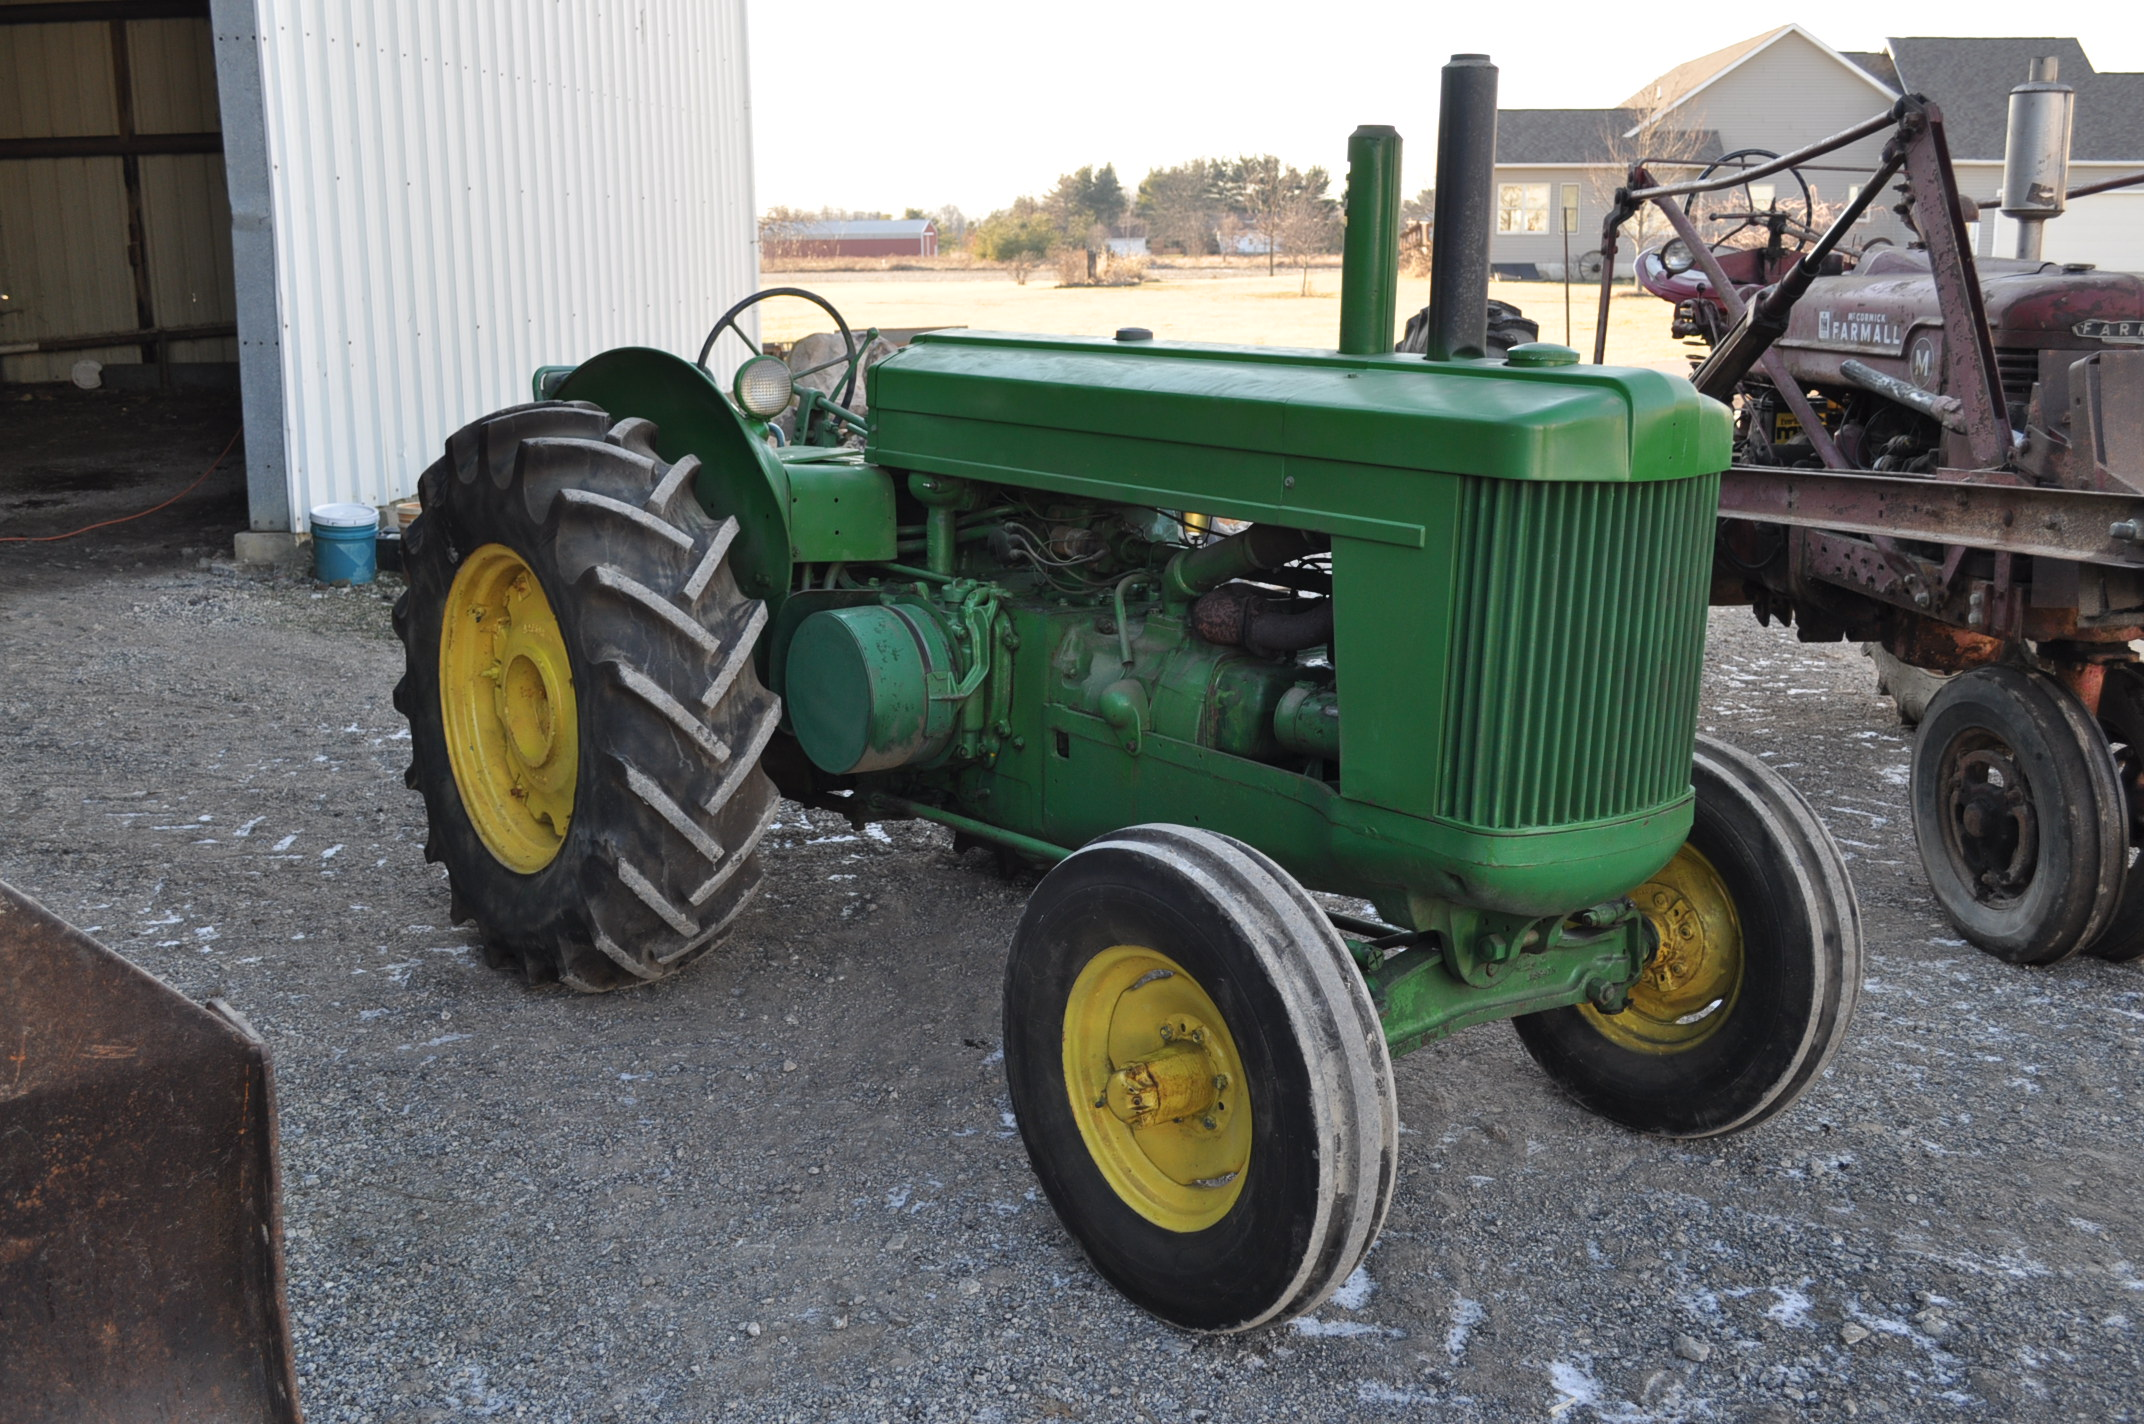 John Deere AR tractor, styled, 14.9-26 rear, 6.50-16 front, wide front, fenders, gasoline, single - Image 2 of 12